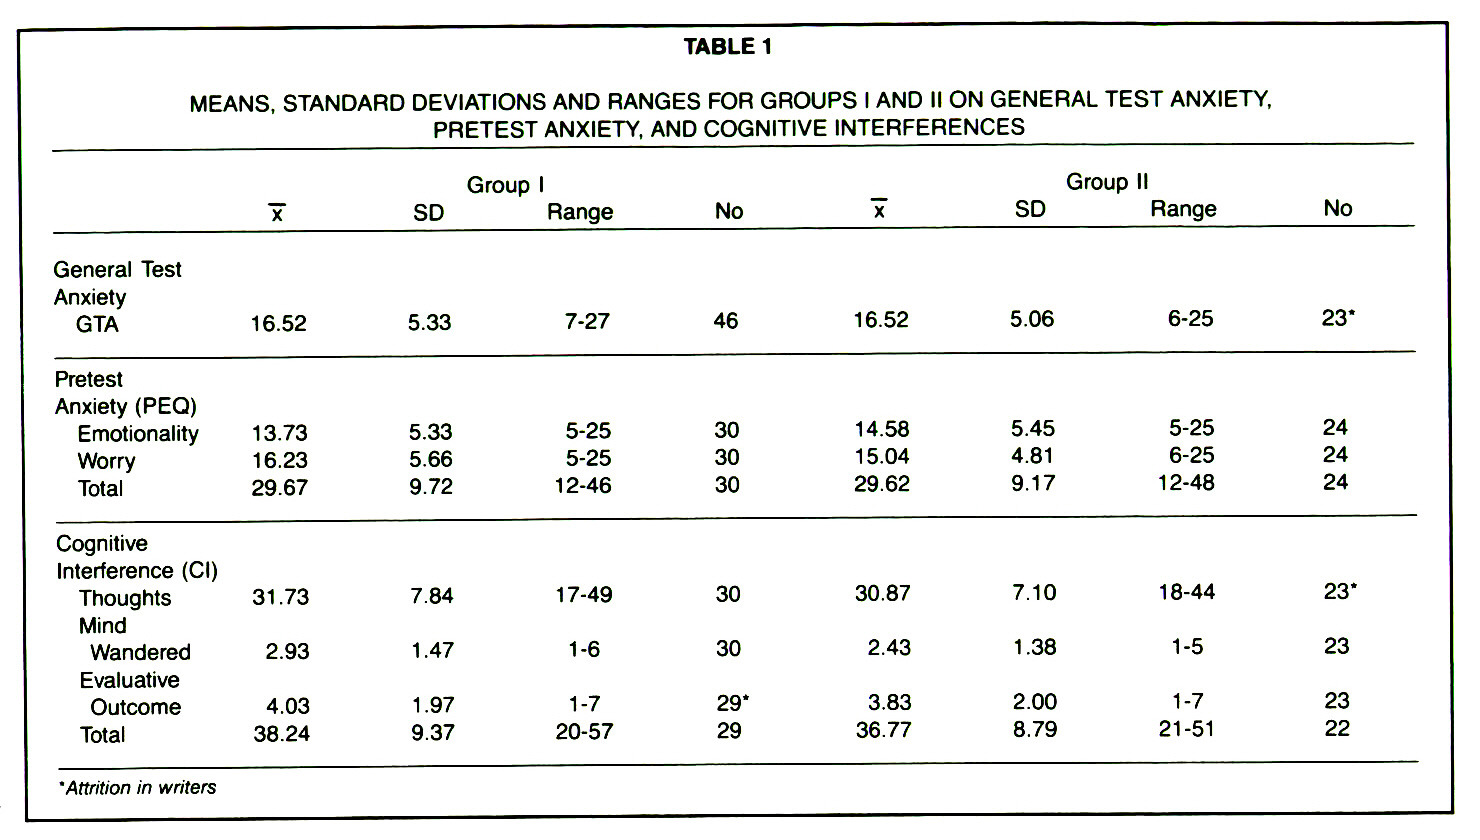 TABLE 1MEANS, STANDARD DEVIATIONS AND RANGES FOR GROUPS I AND Il ON GENERAL TEST ANXIETY, PRETEST ANXIETY, AND COGNITIVE INTERFERENCES